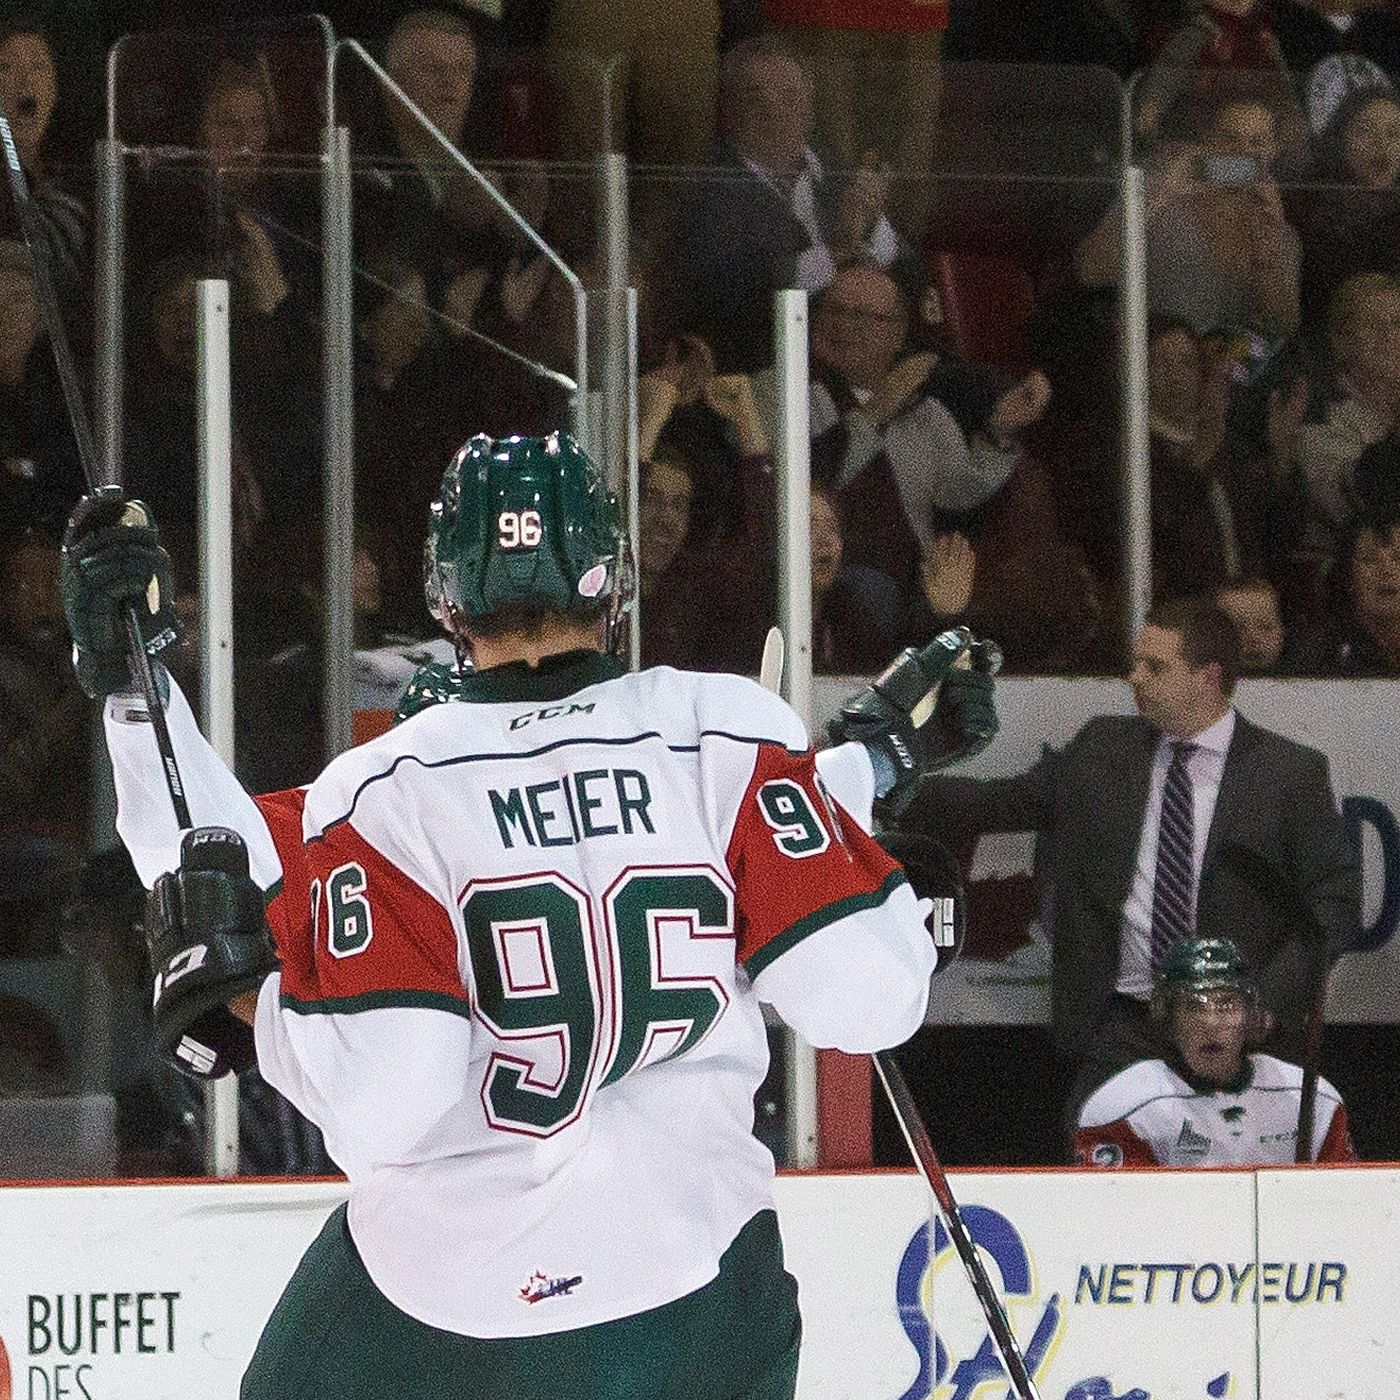 357d0deee 2015 NHL Draft Prospect Profile  12 - Timo Meier - The Cannon